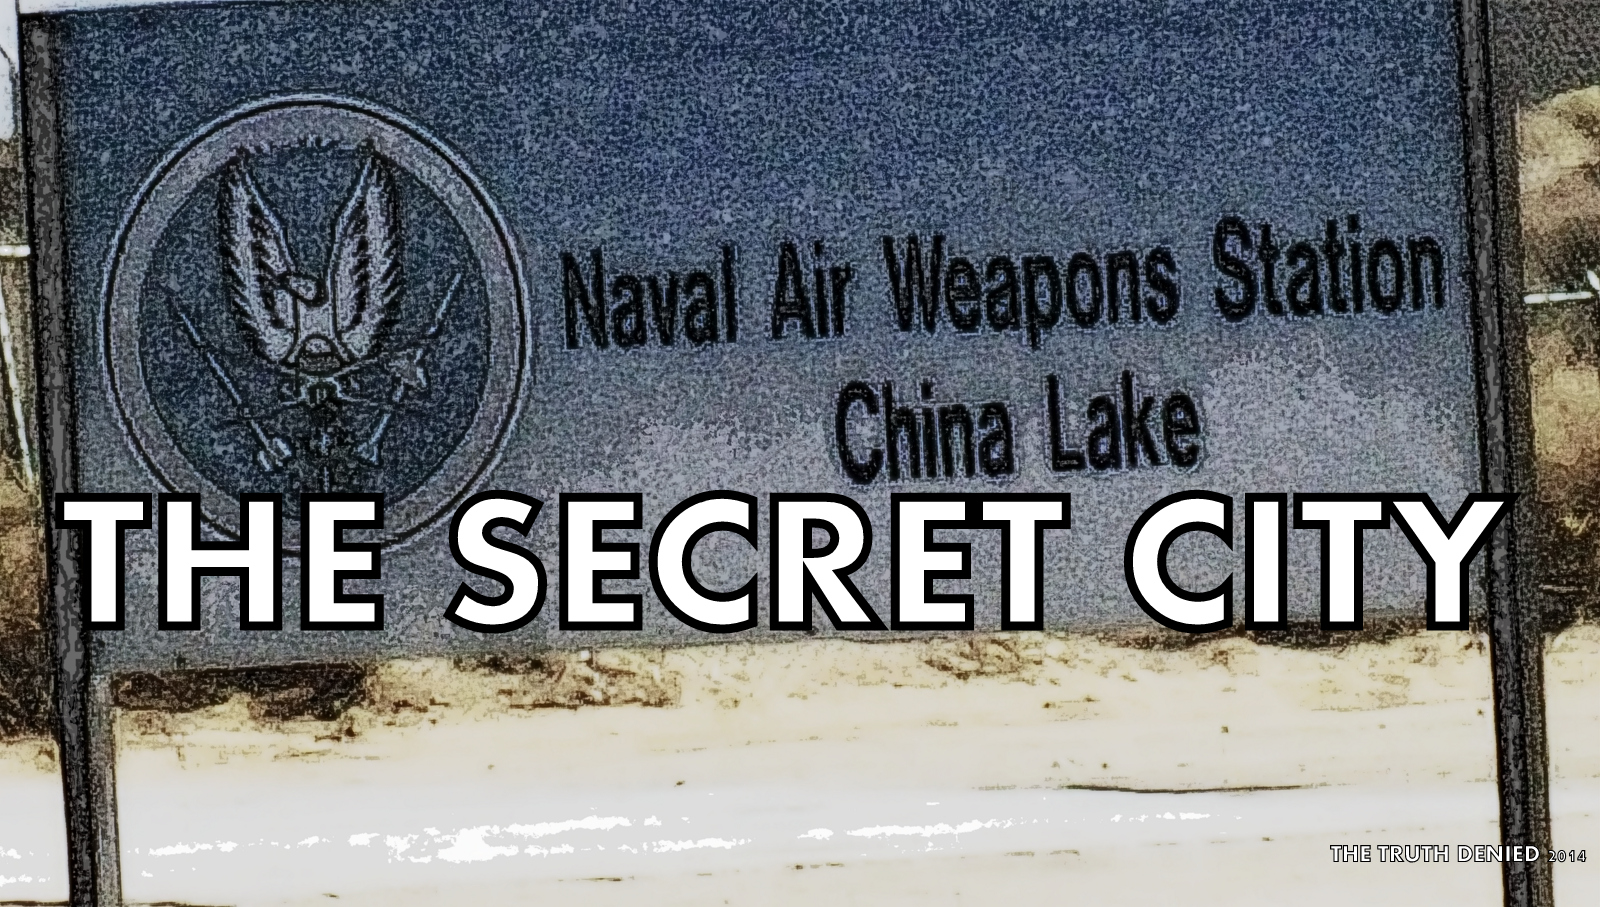 China Lake Naval Air Weapons Station: The Epicenter of the California  Earthquakes and Hub of Geoengineering is Exposed by a Former Insider